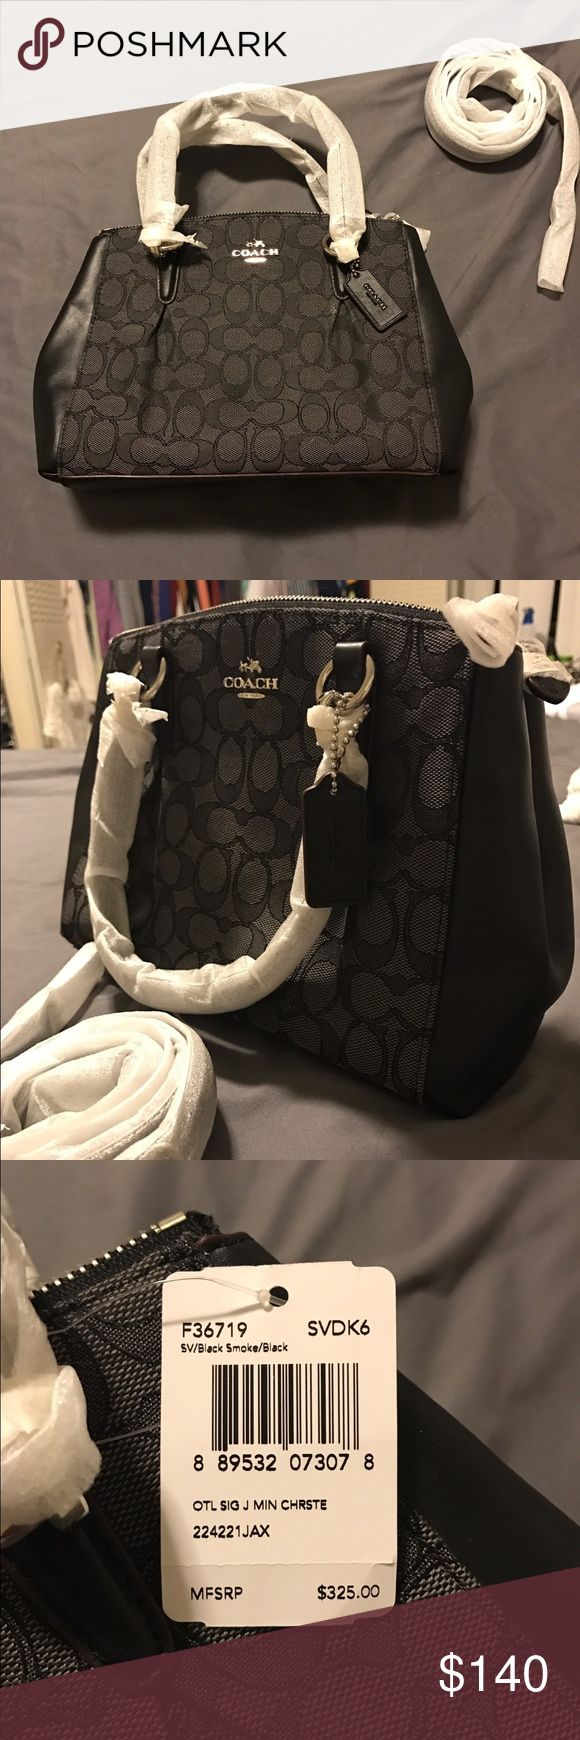 New with tags black Coach purse Brand new with tags attached Coach purse. Comes with handles or cross-body strap. Black signature Coach pattern and leather. Both inside and outside pockets. Coach Bags Crossbody Bags